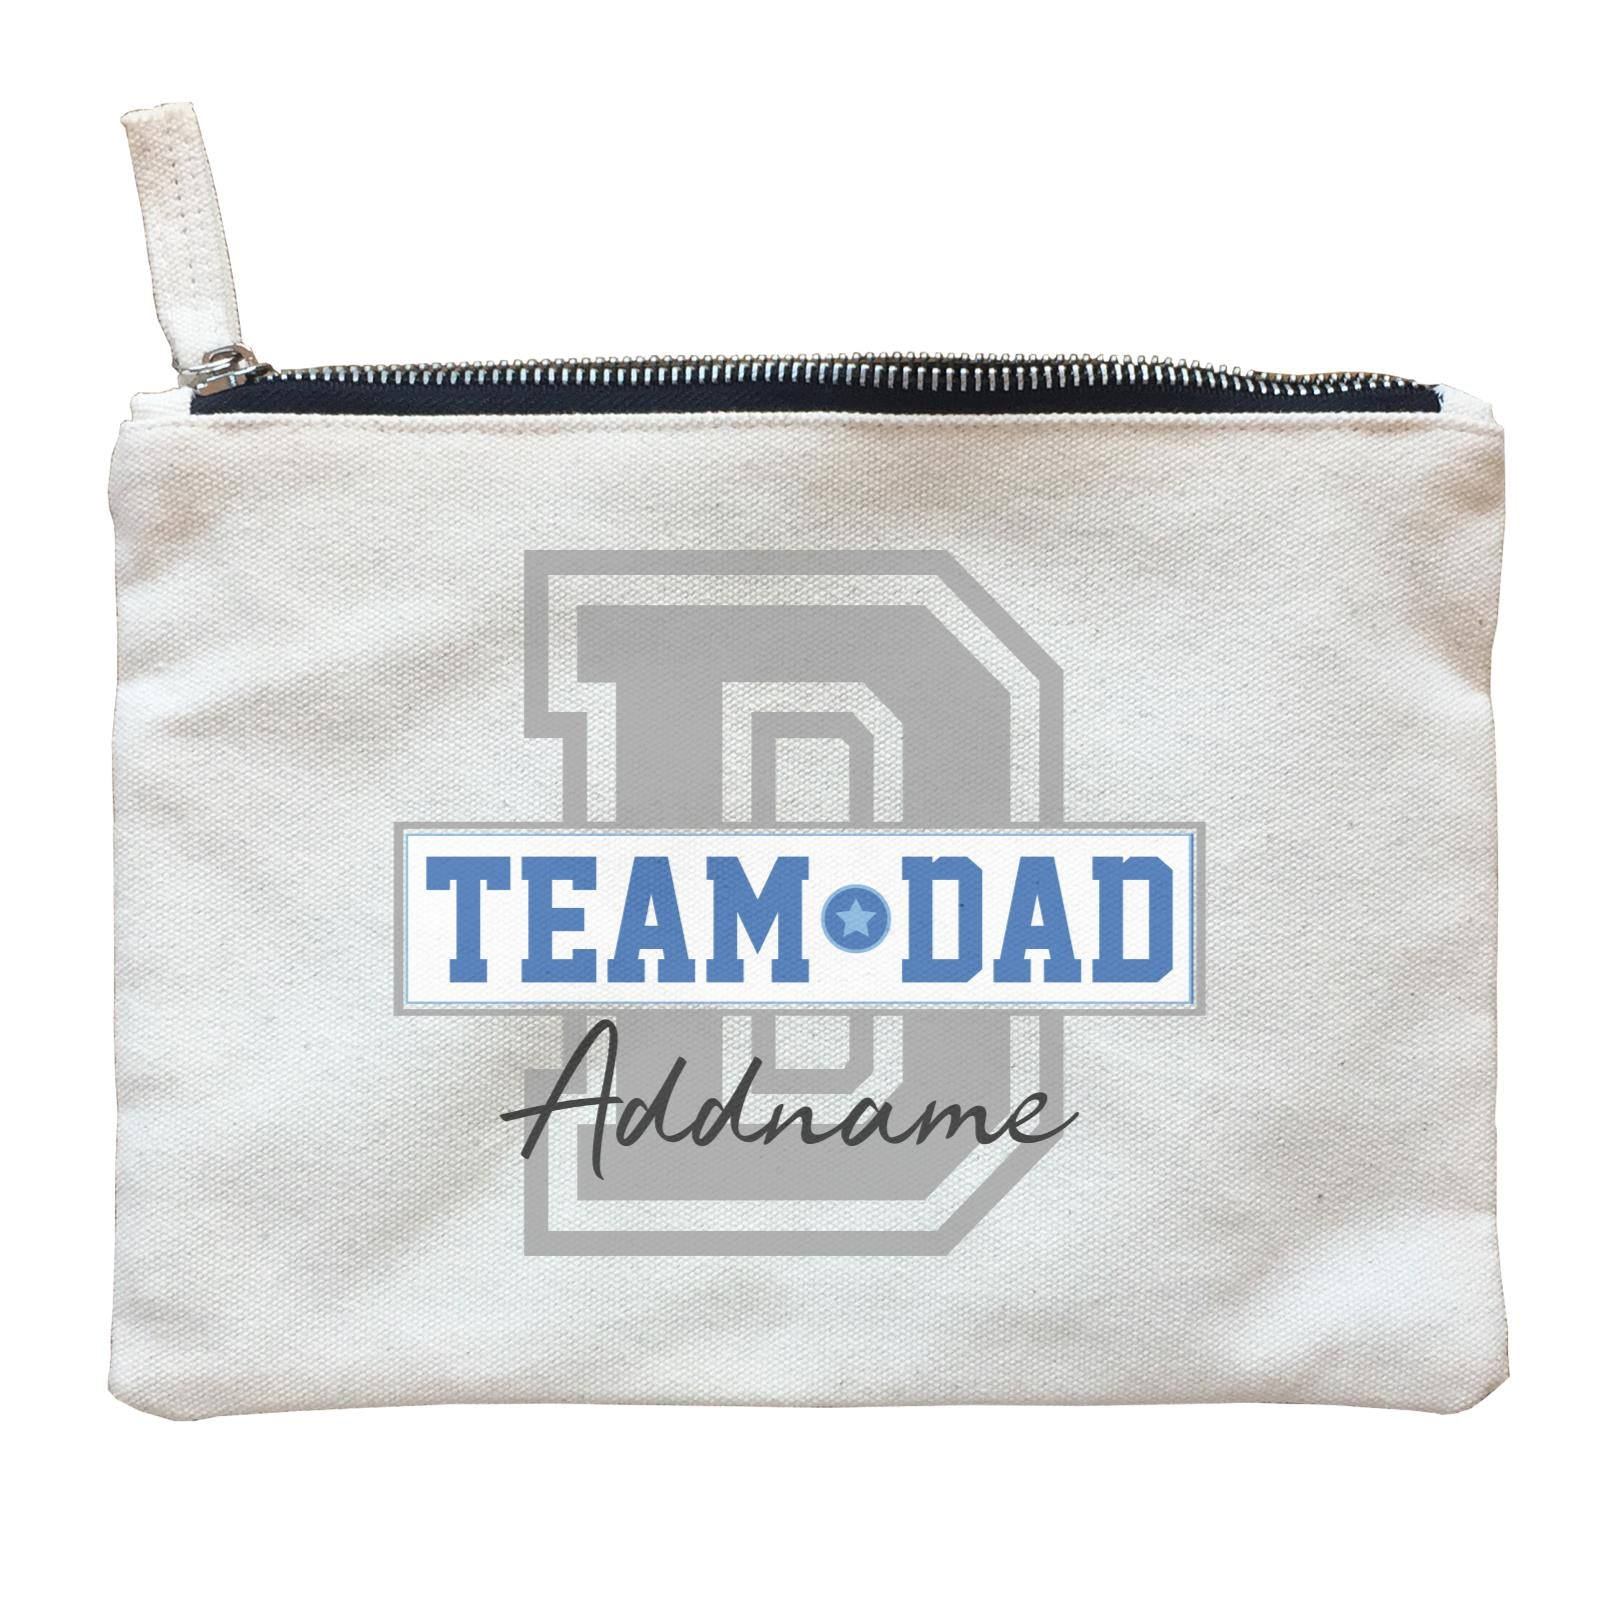 Team Dad Addname Zipper Pouch